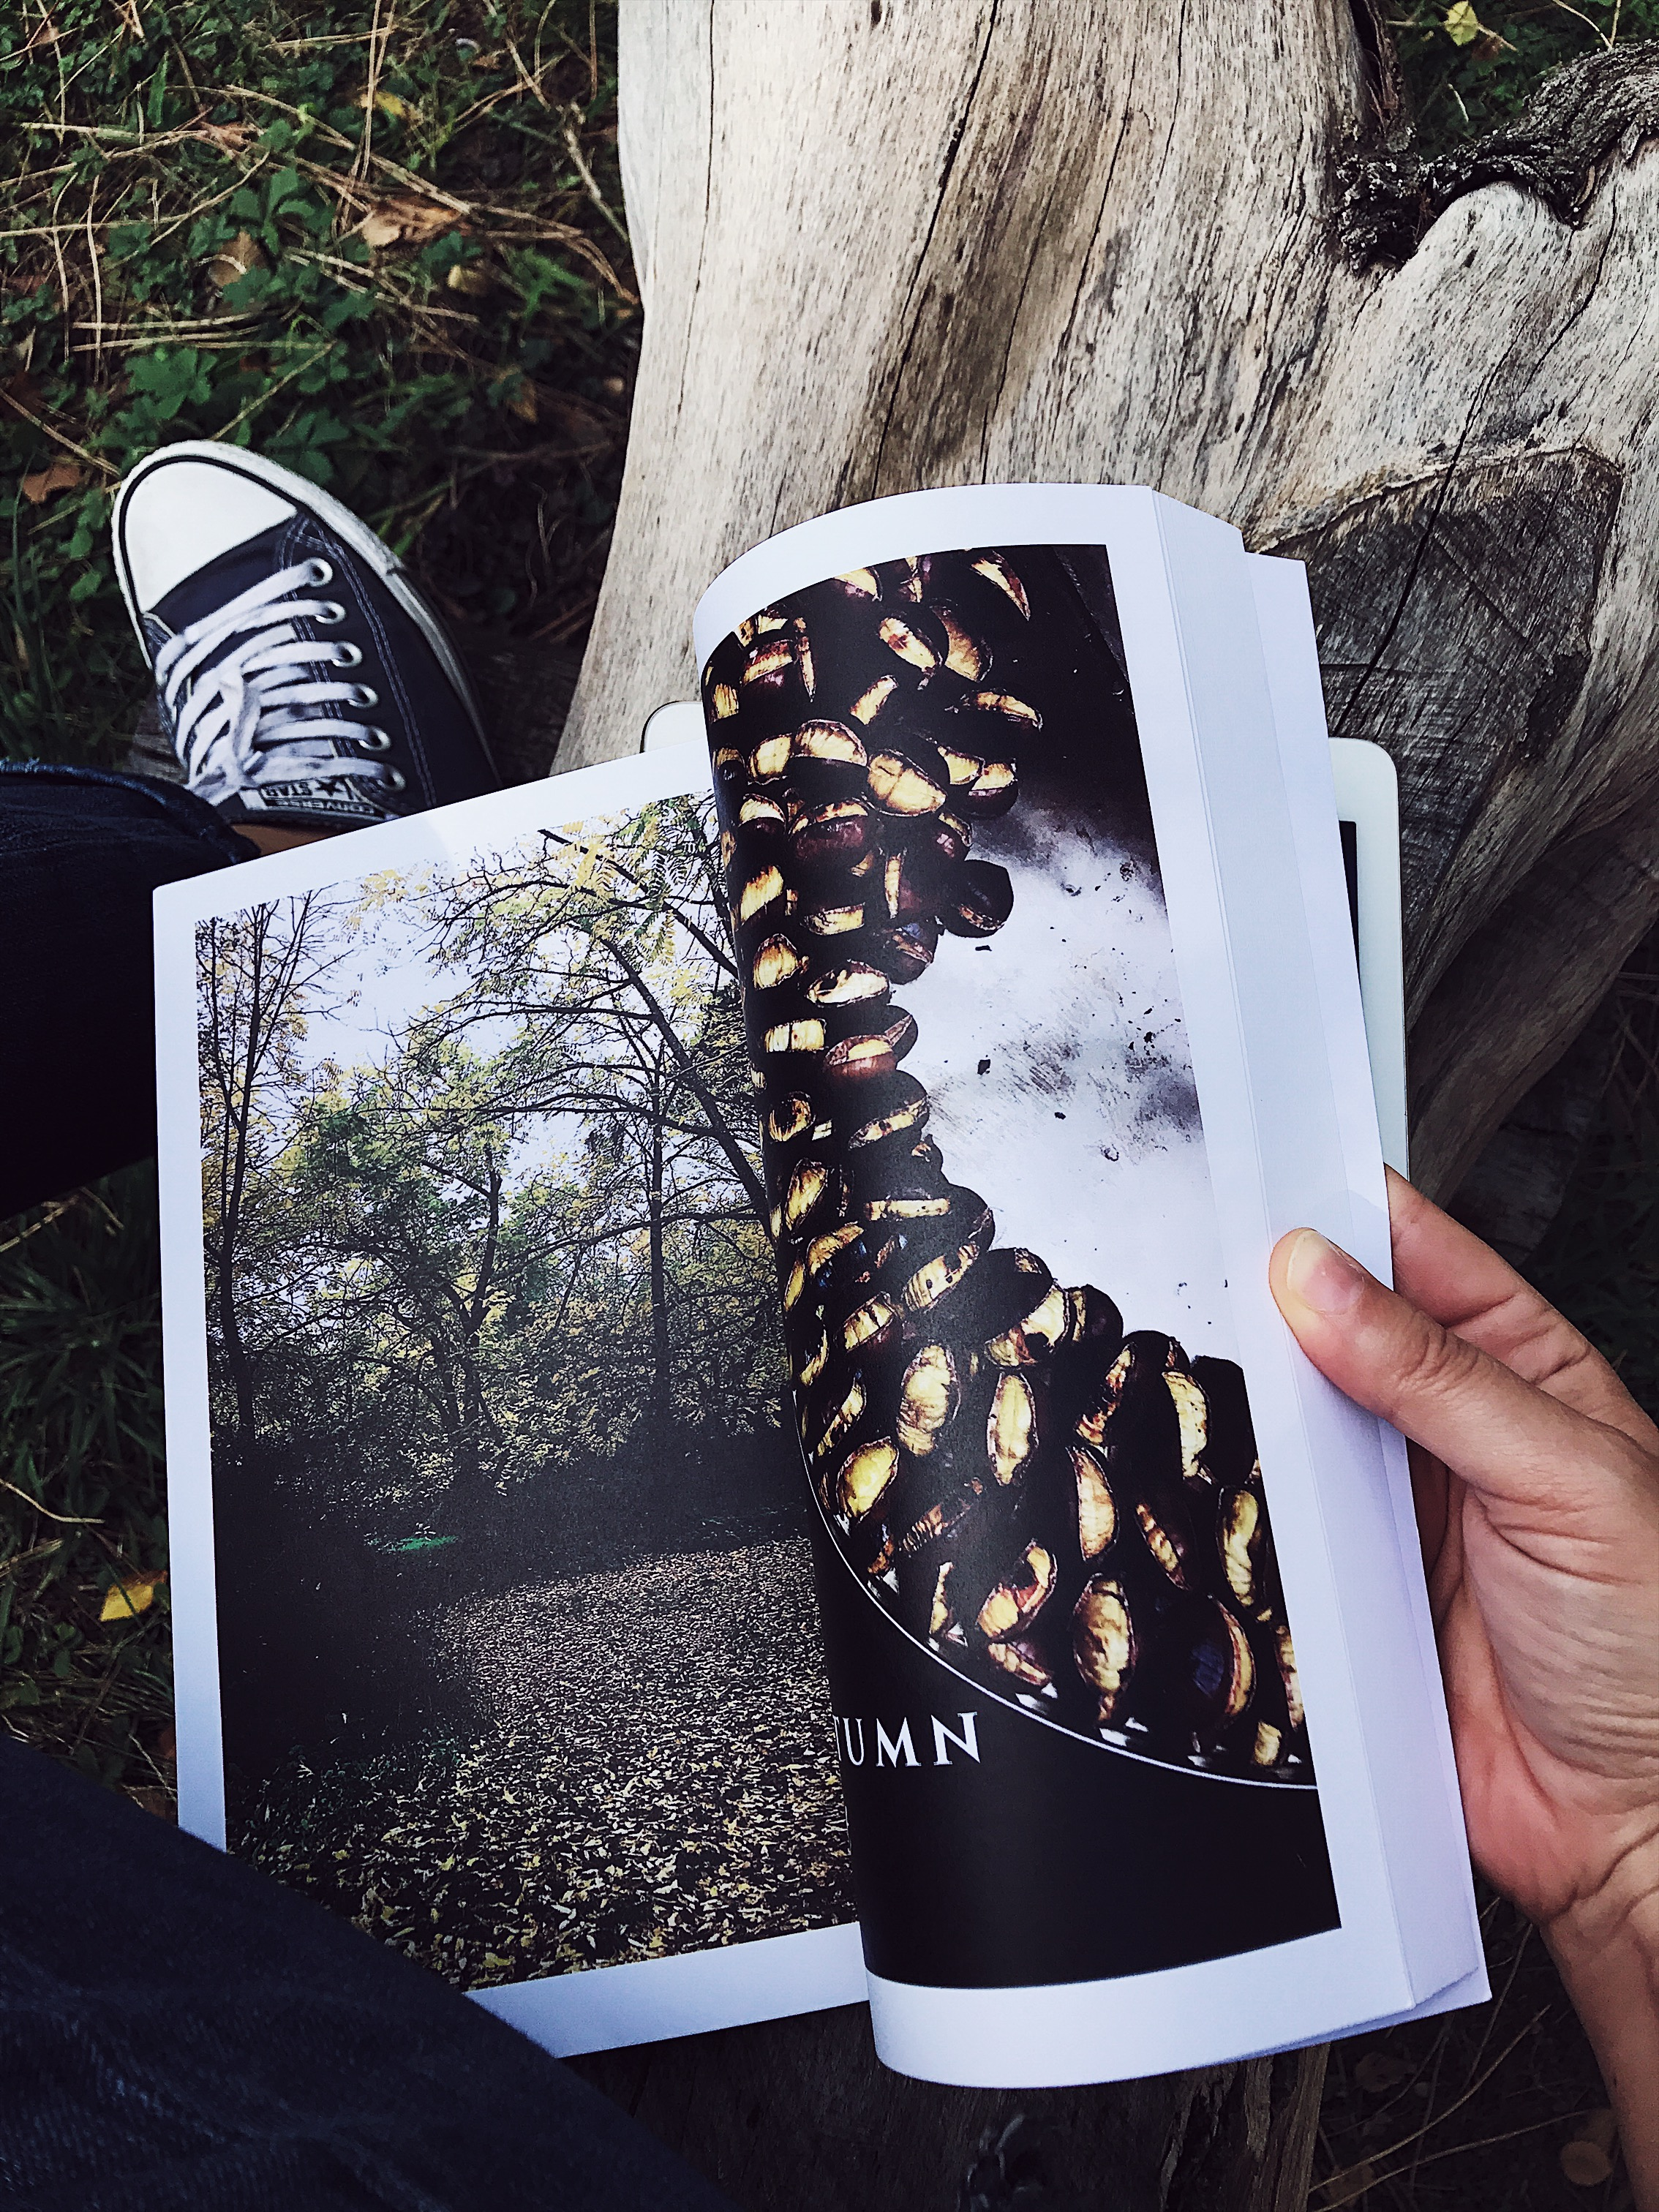 food magazine on a log and blue sneakers